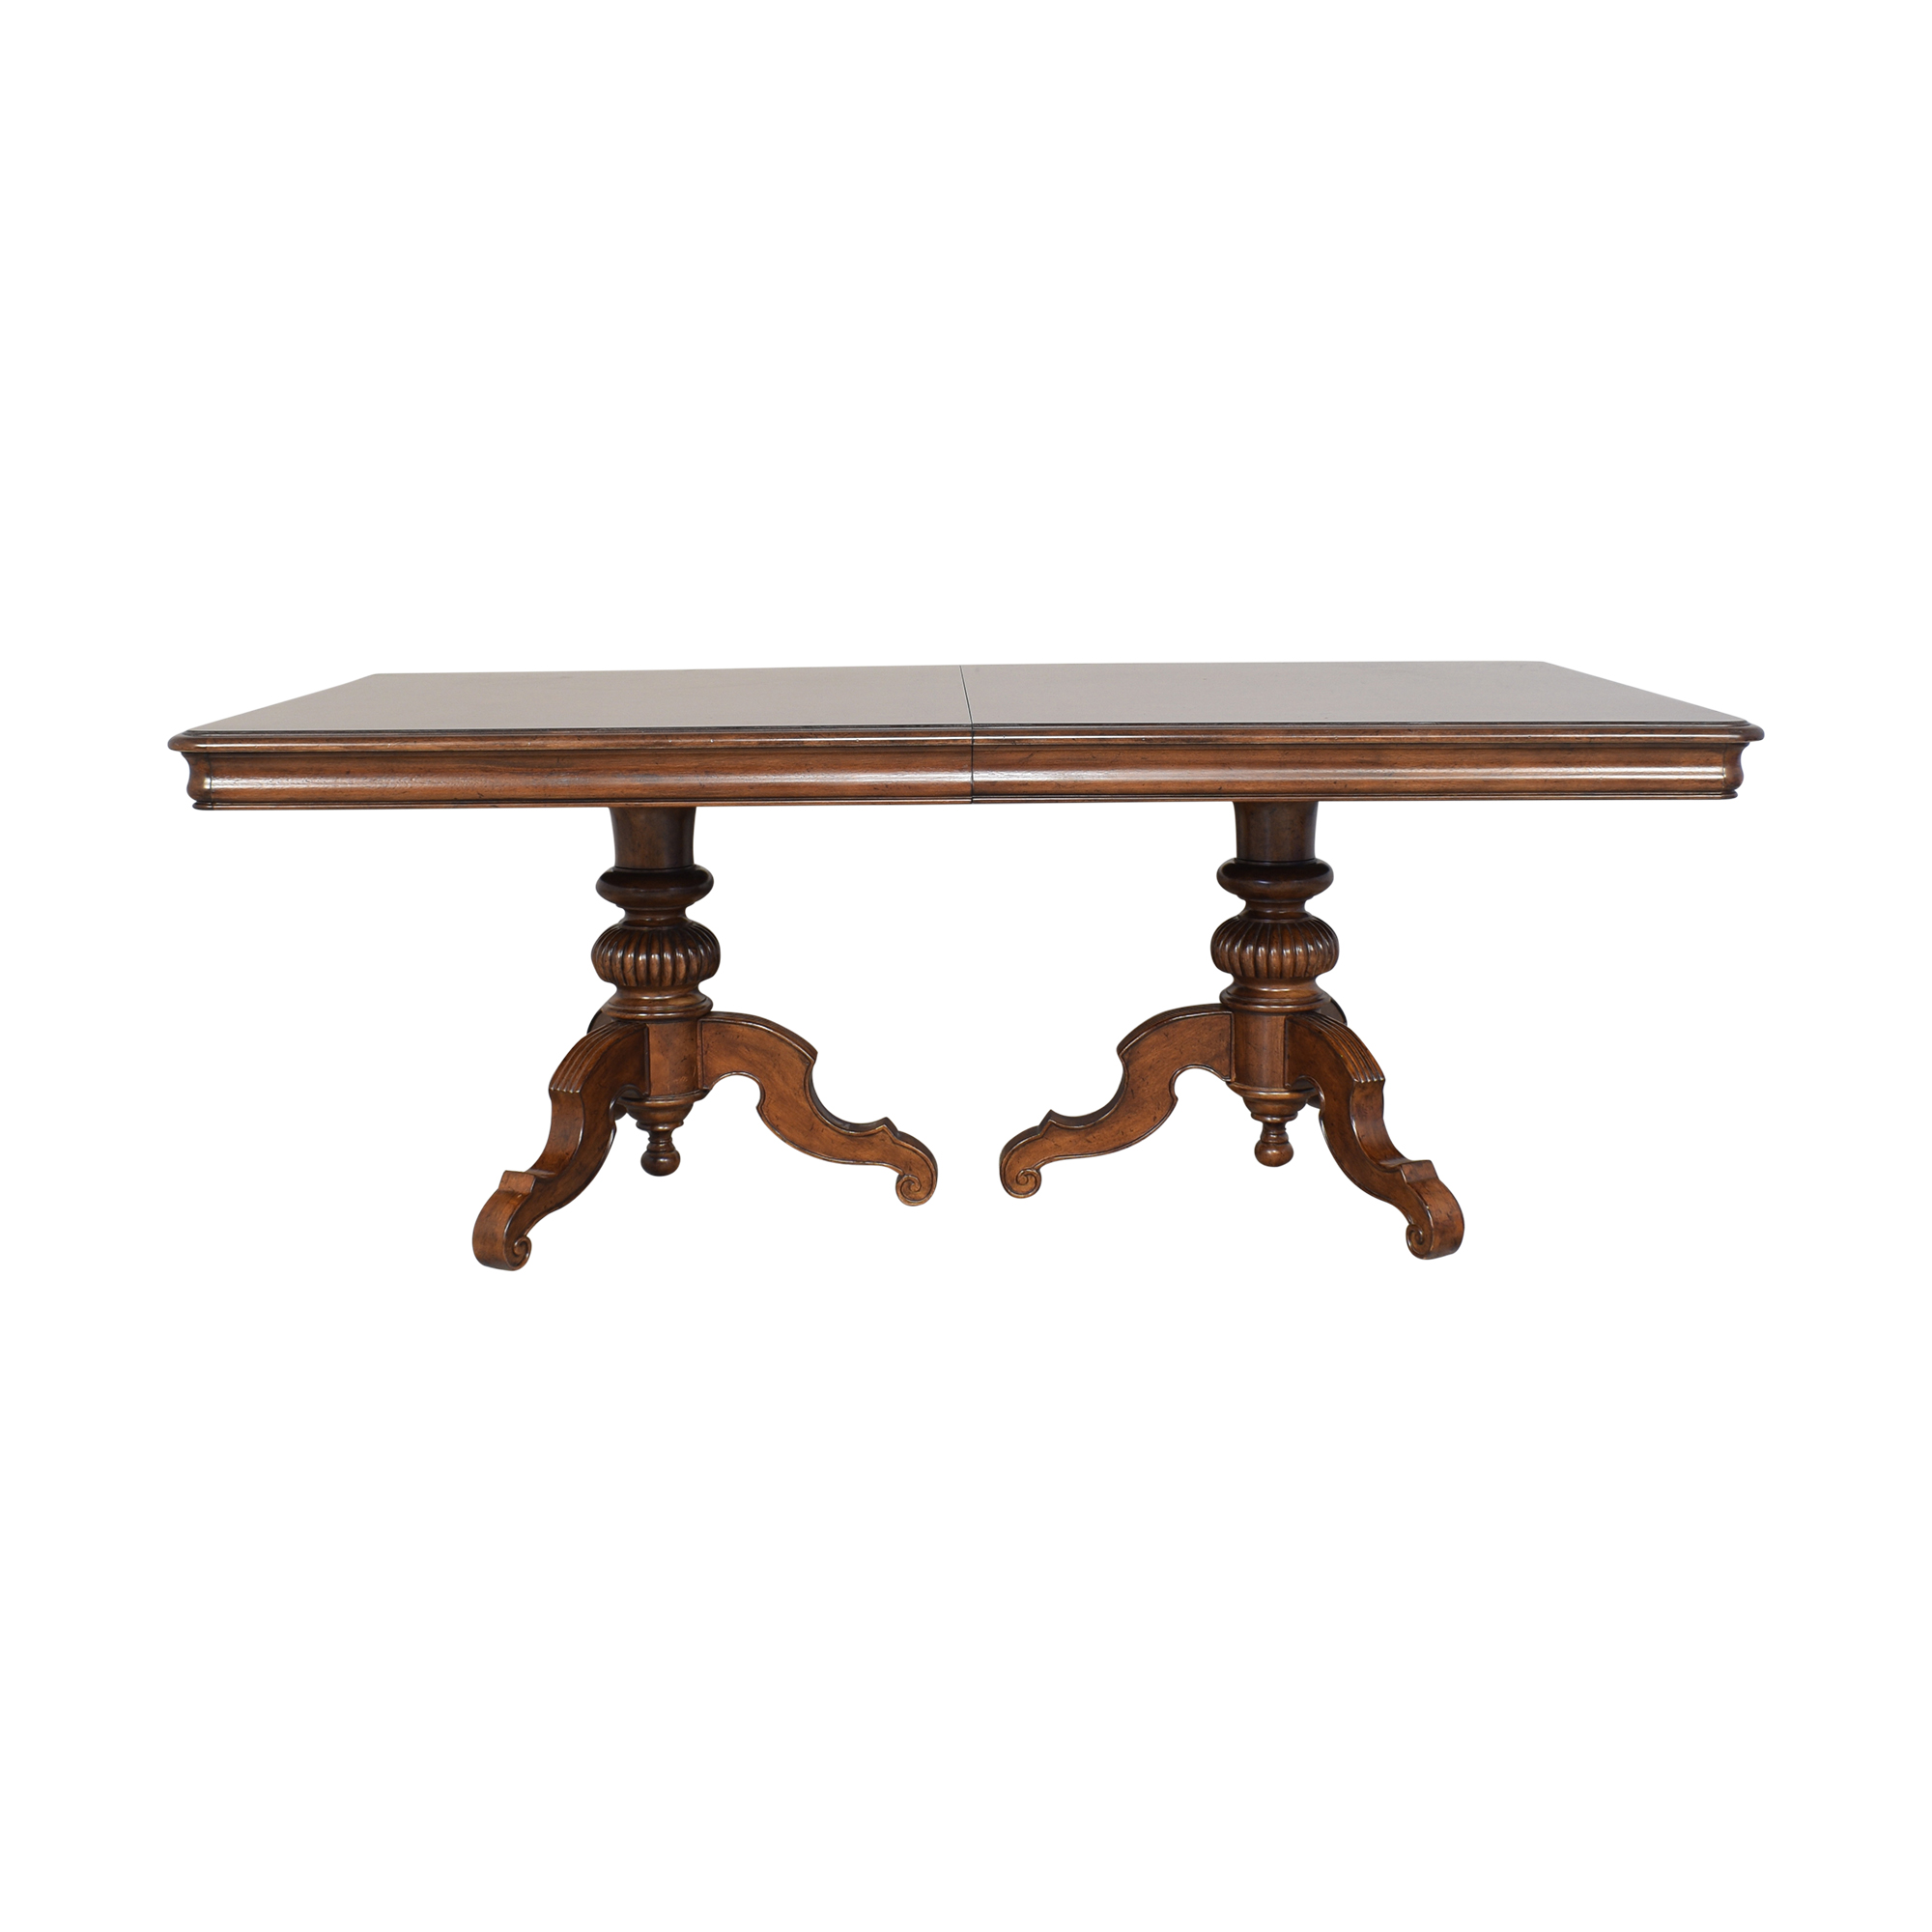 shop Thomasville Ernest Hemingway Castillian Double Pedestal Dining Table Thomasville Tables